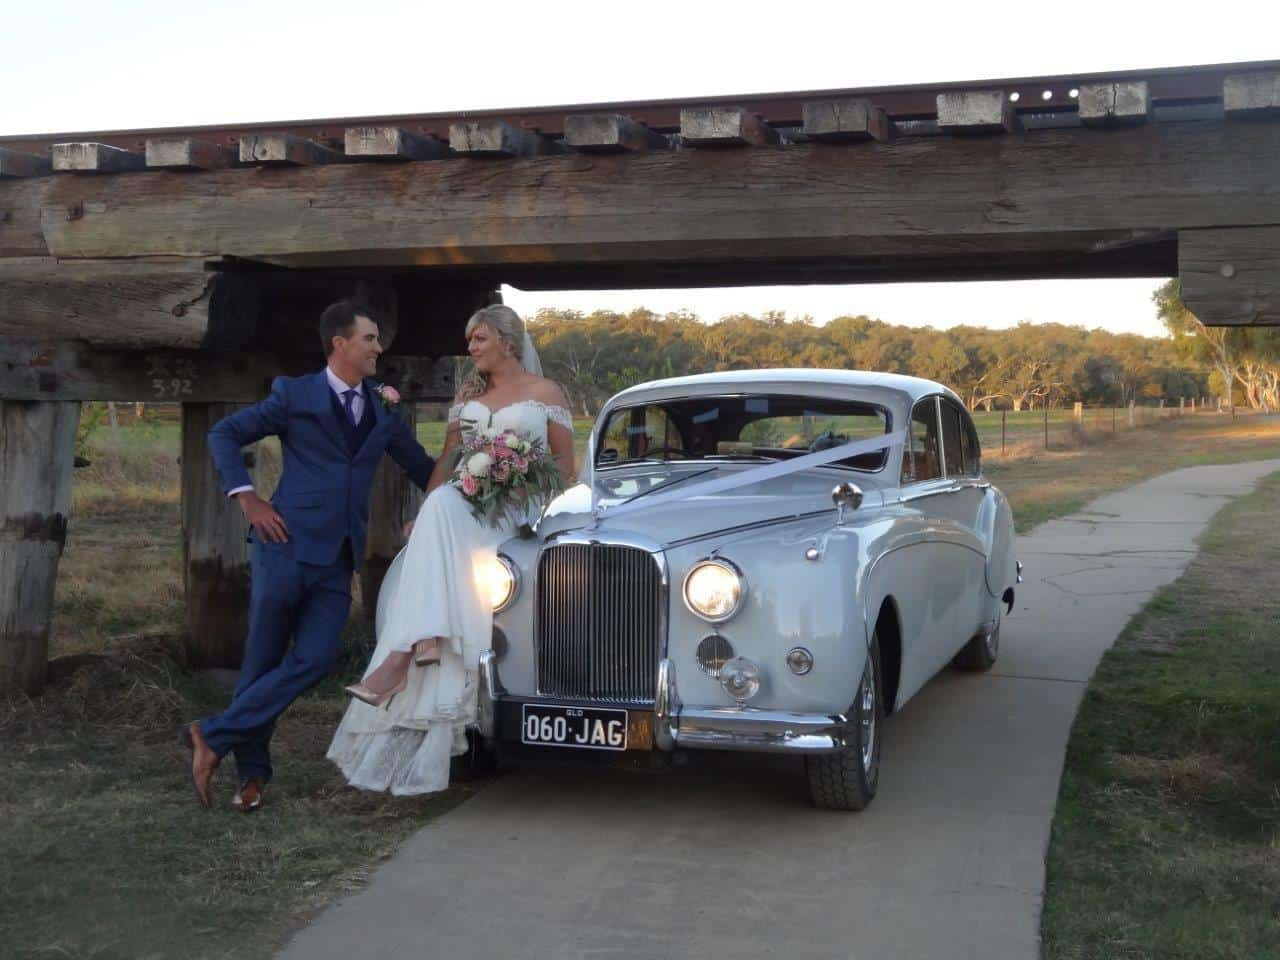 Jag Wedding car with bride & groom